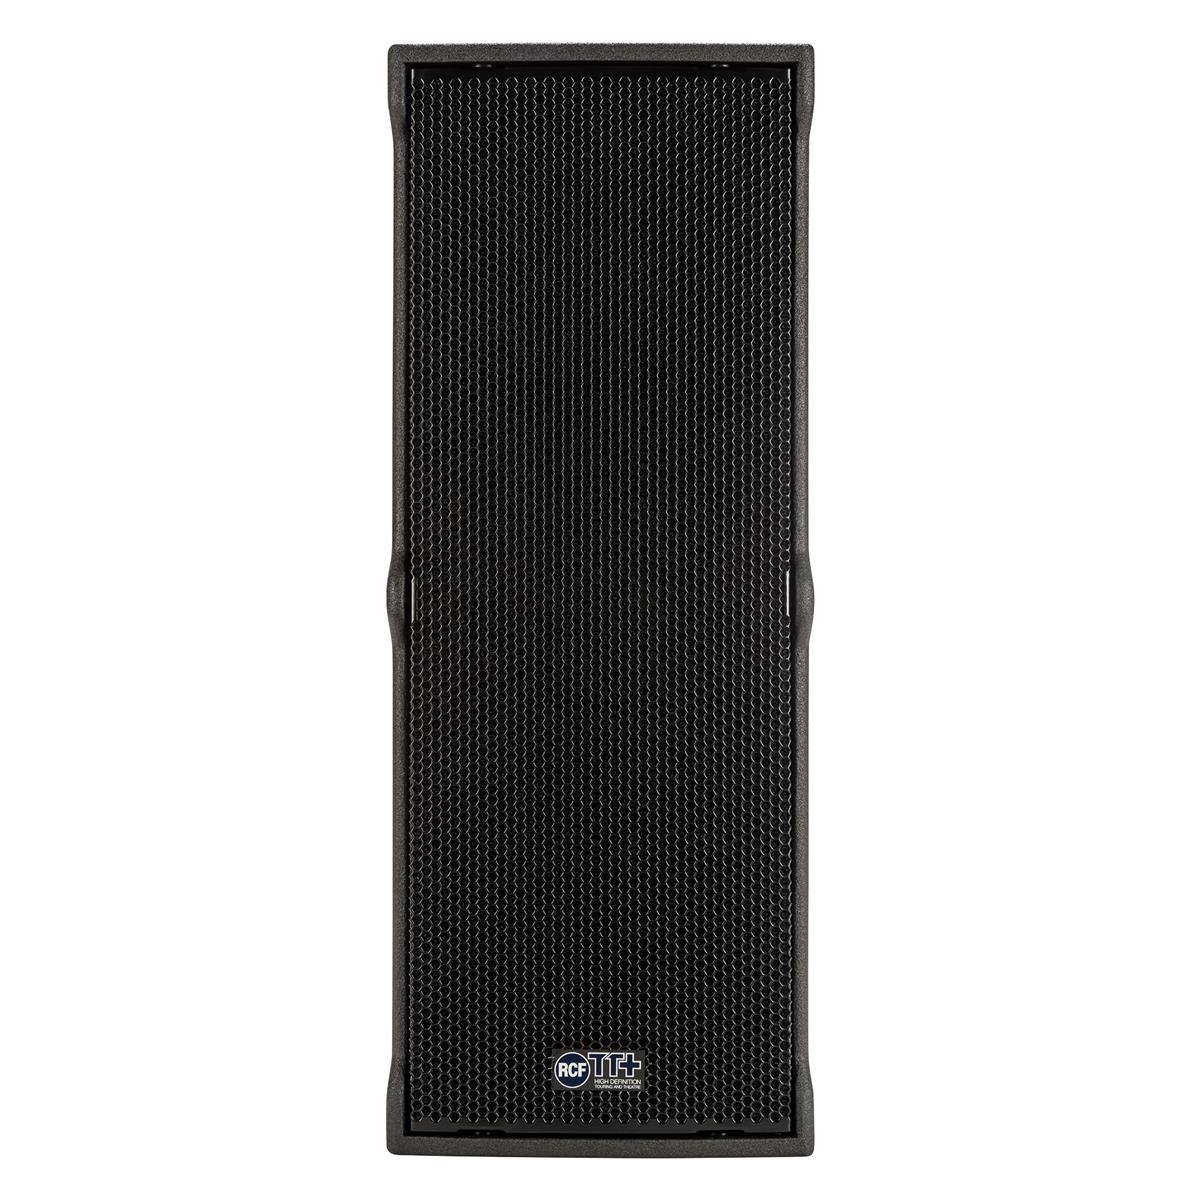 RCF TTW 4-A 90-240V Active two-way wide directivity speaker